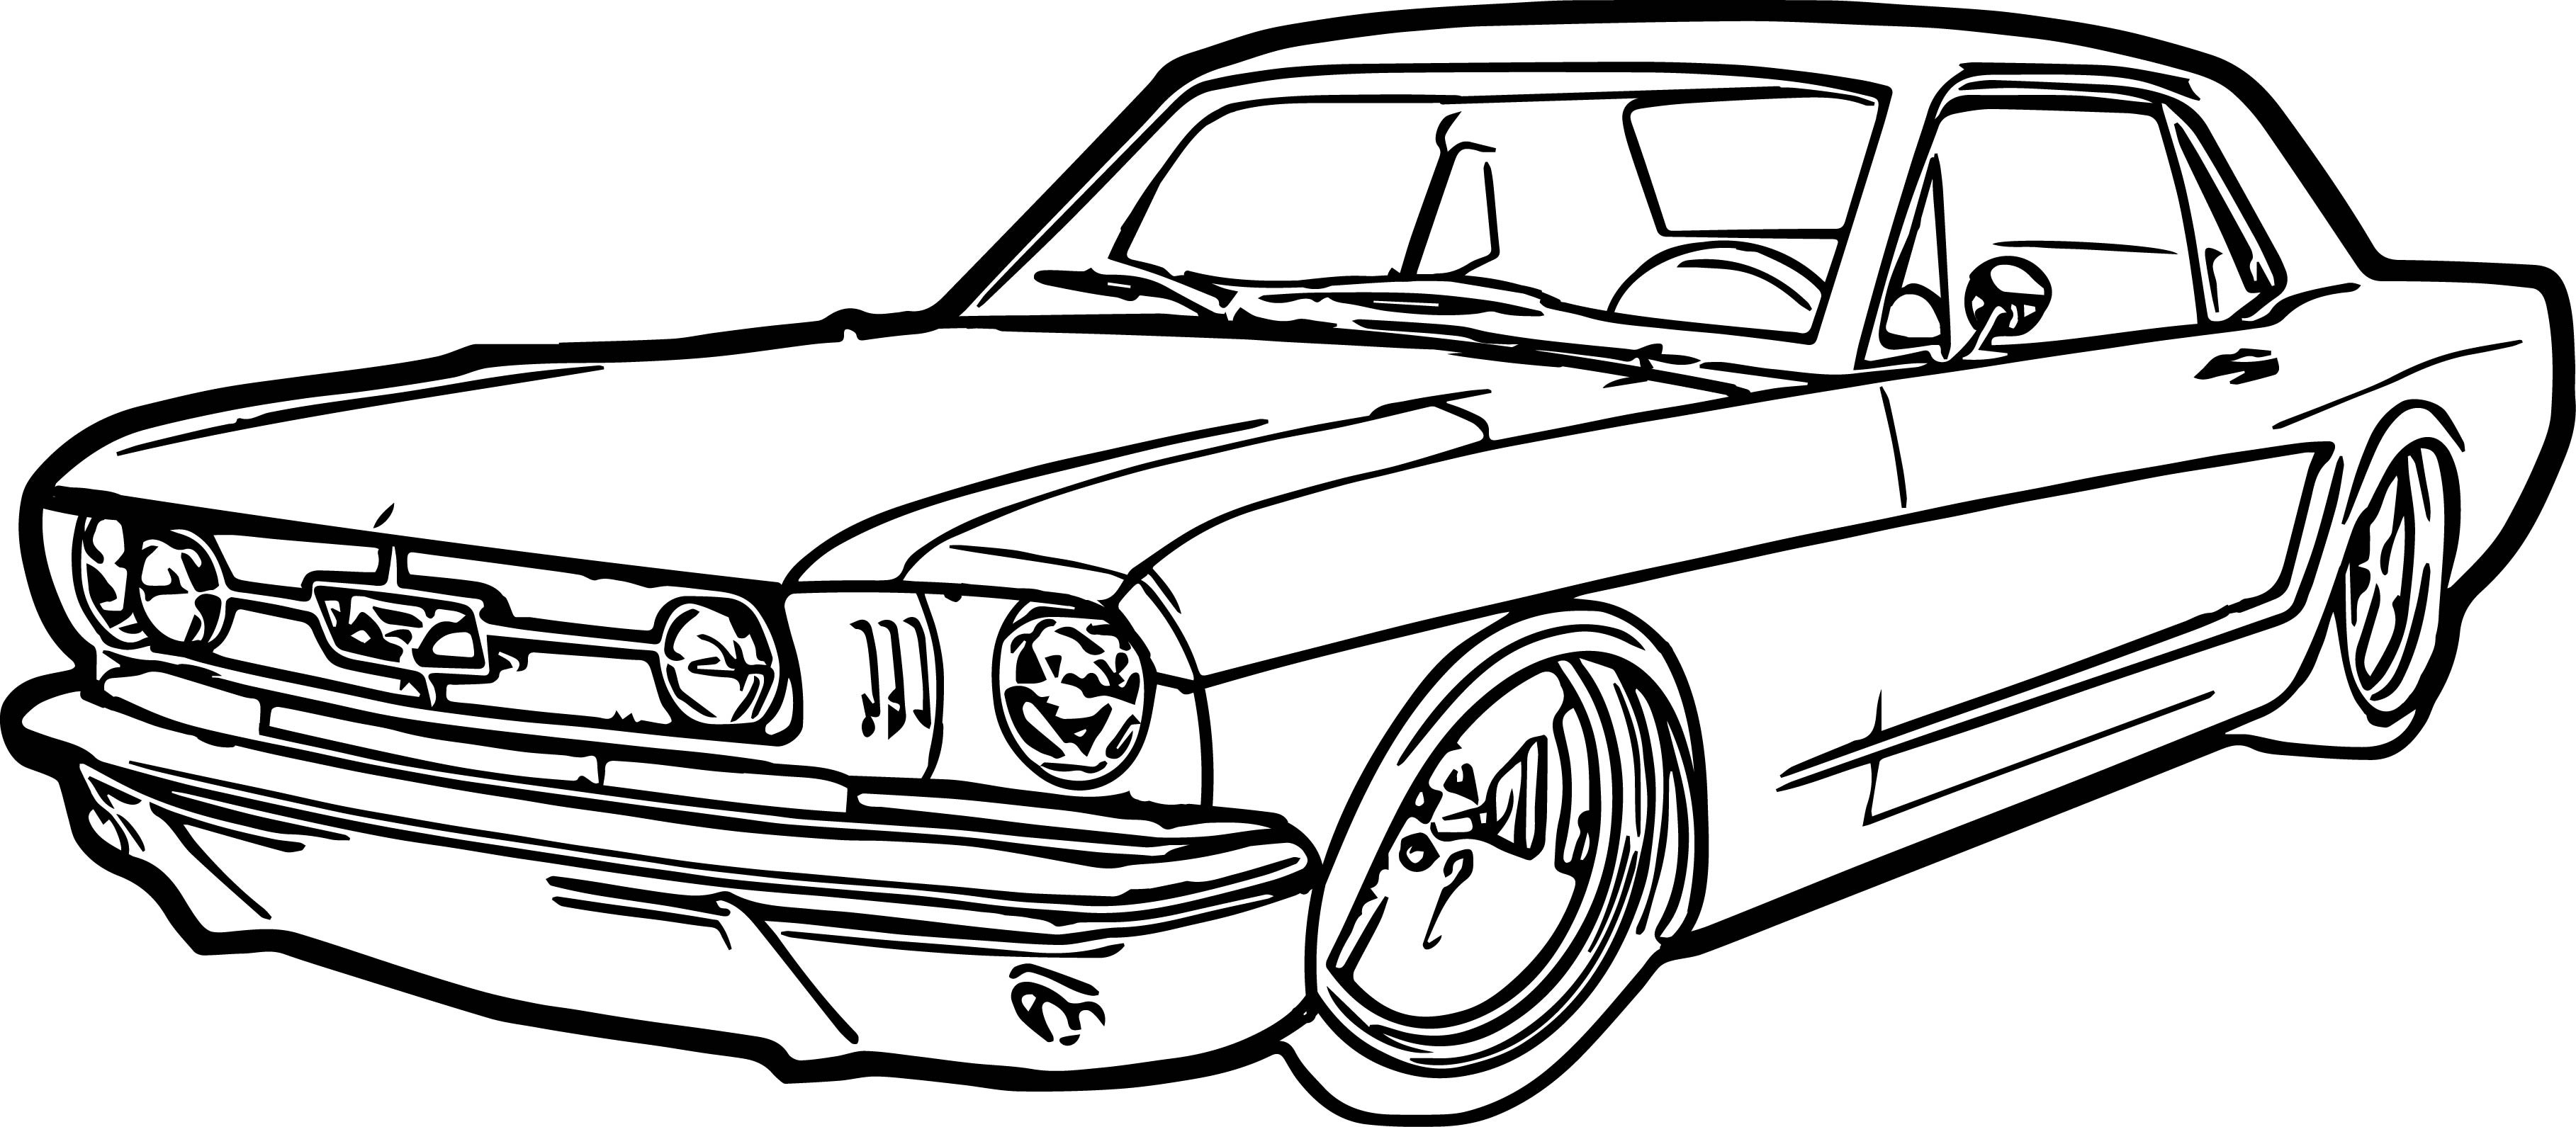 3635x1591 Coloring Pages Coolr Coloring Pages Printable